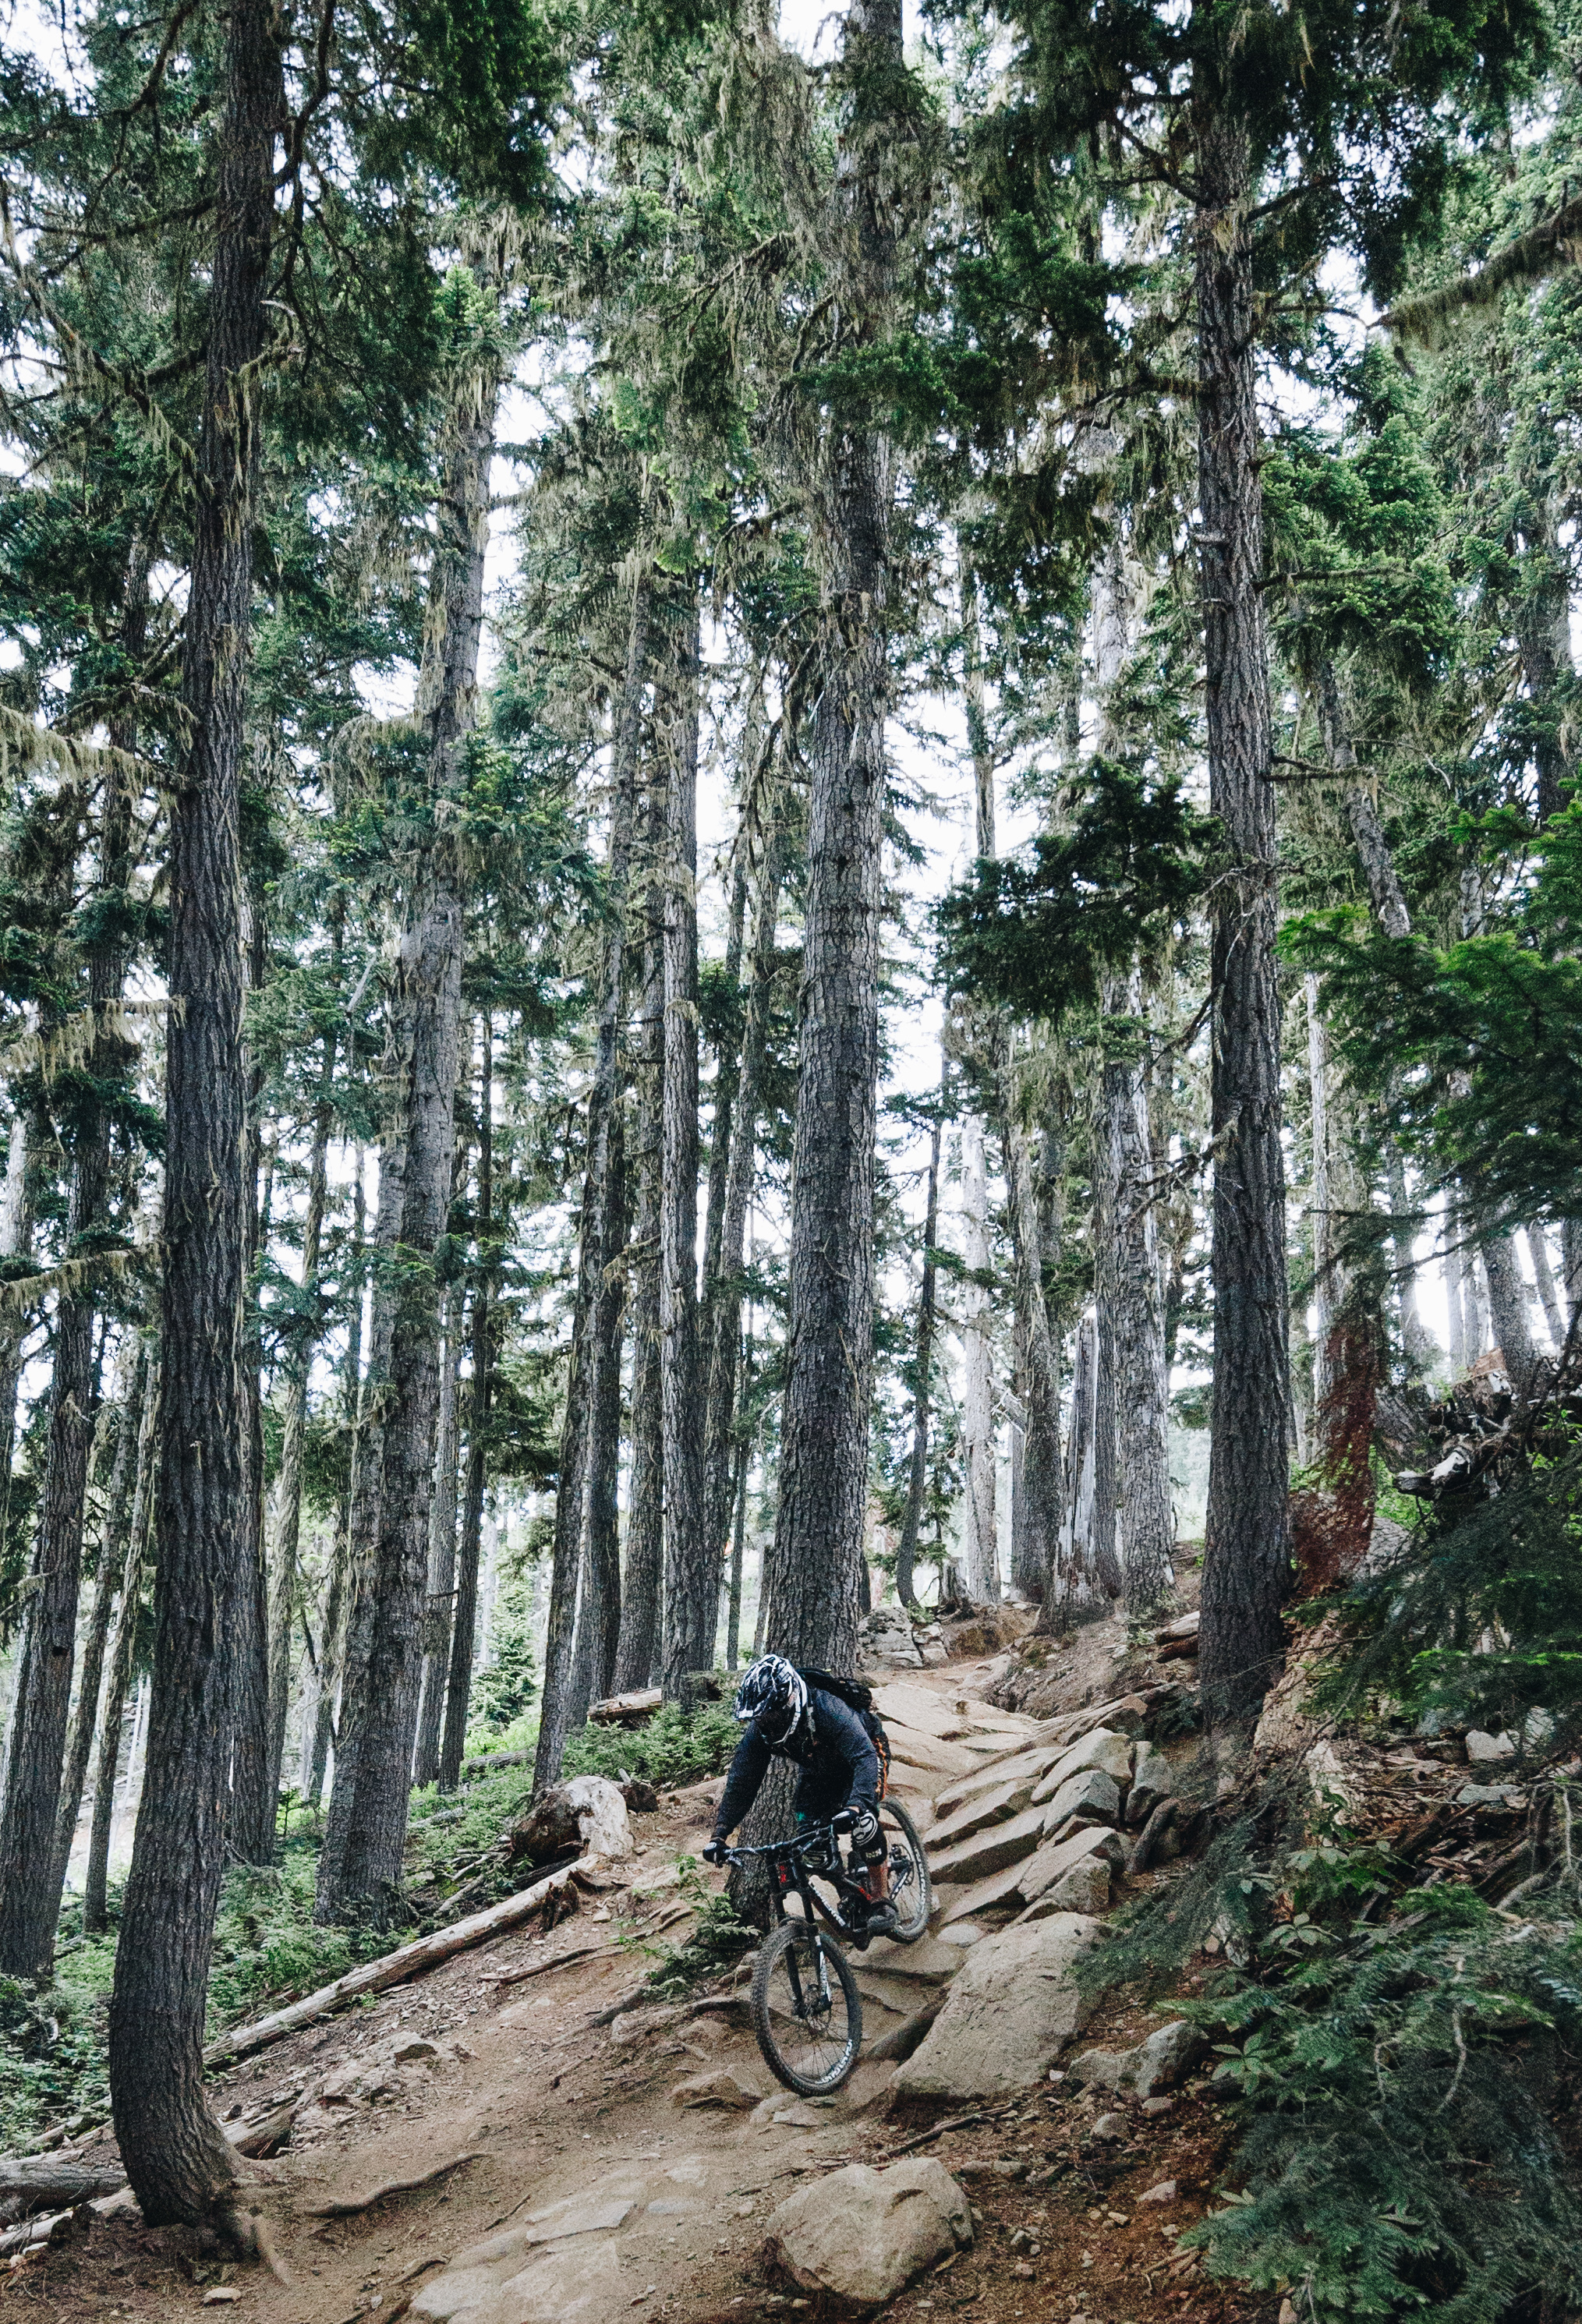 A nice, steep technical section . The photos don't show the speed at which riders navigate the terrain; it's insane.